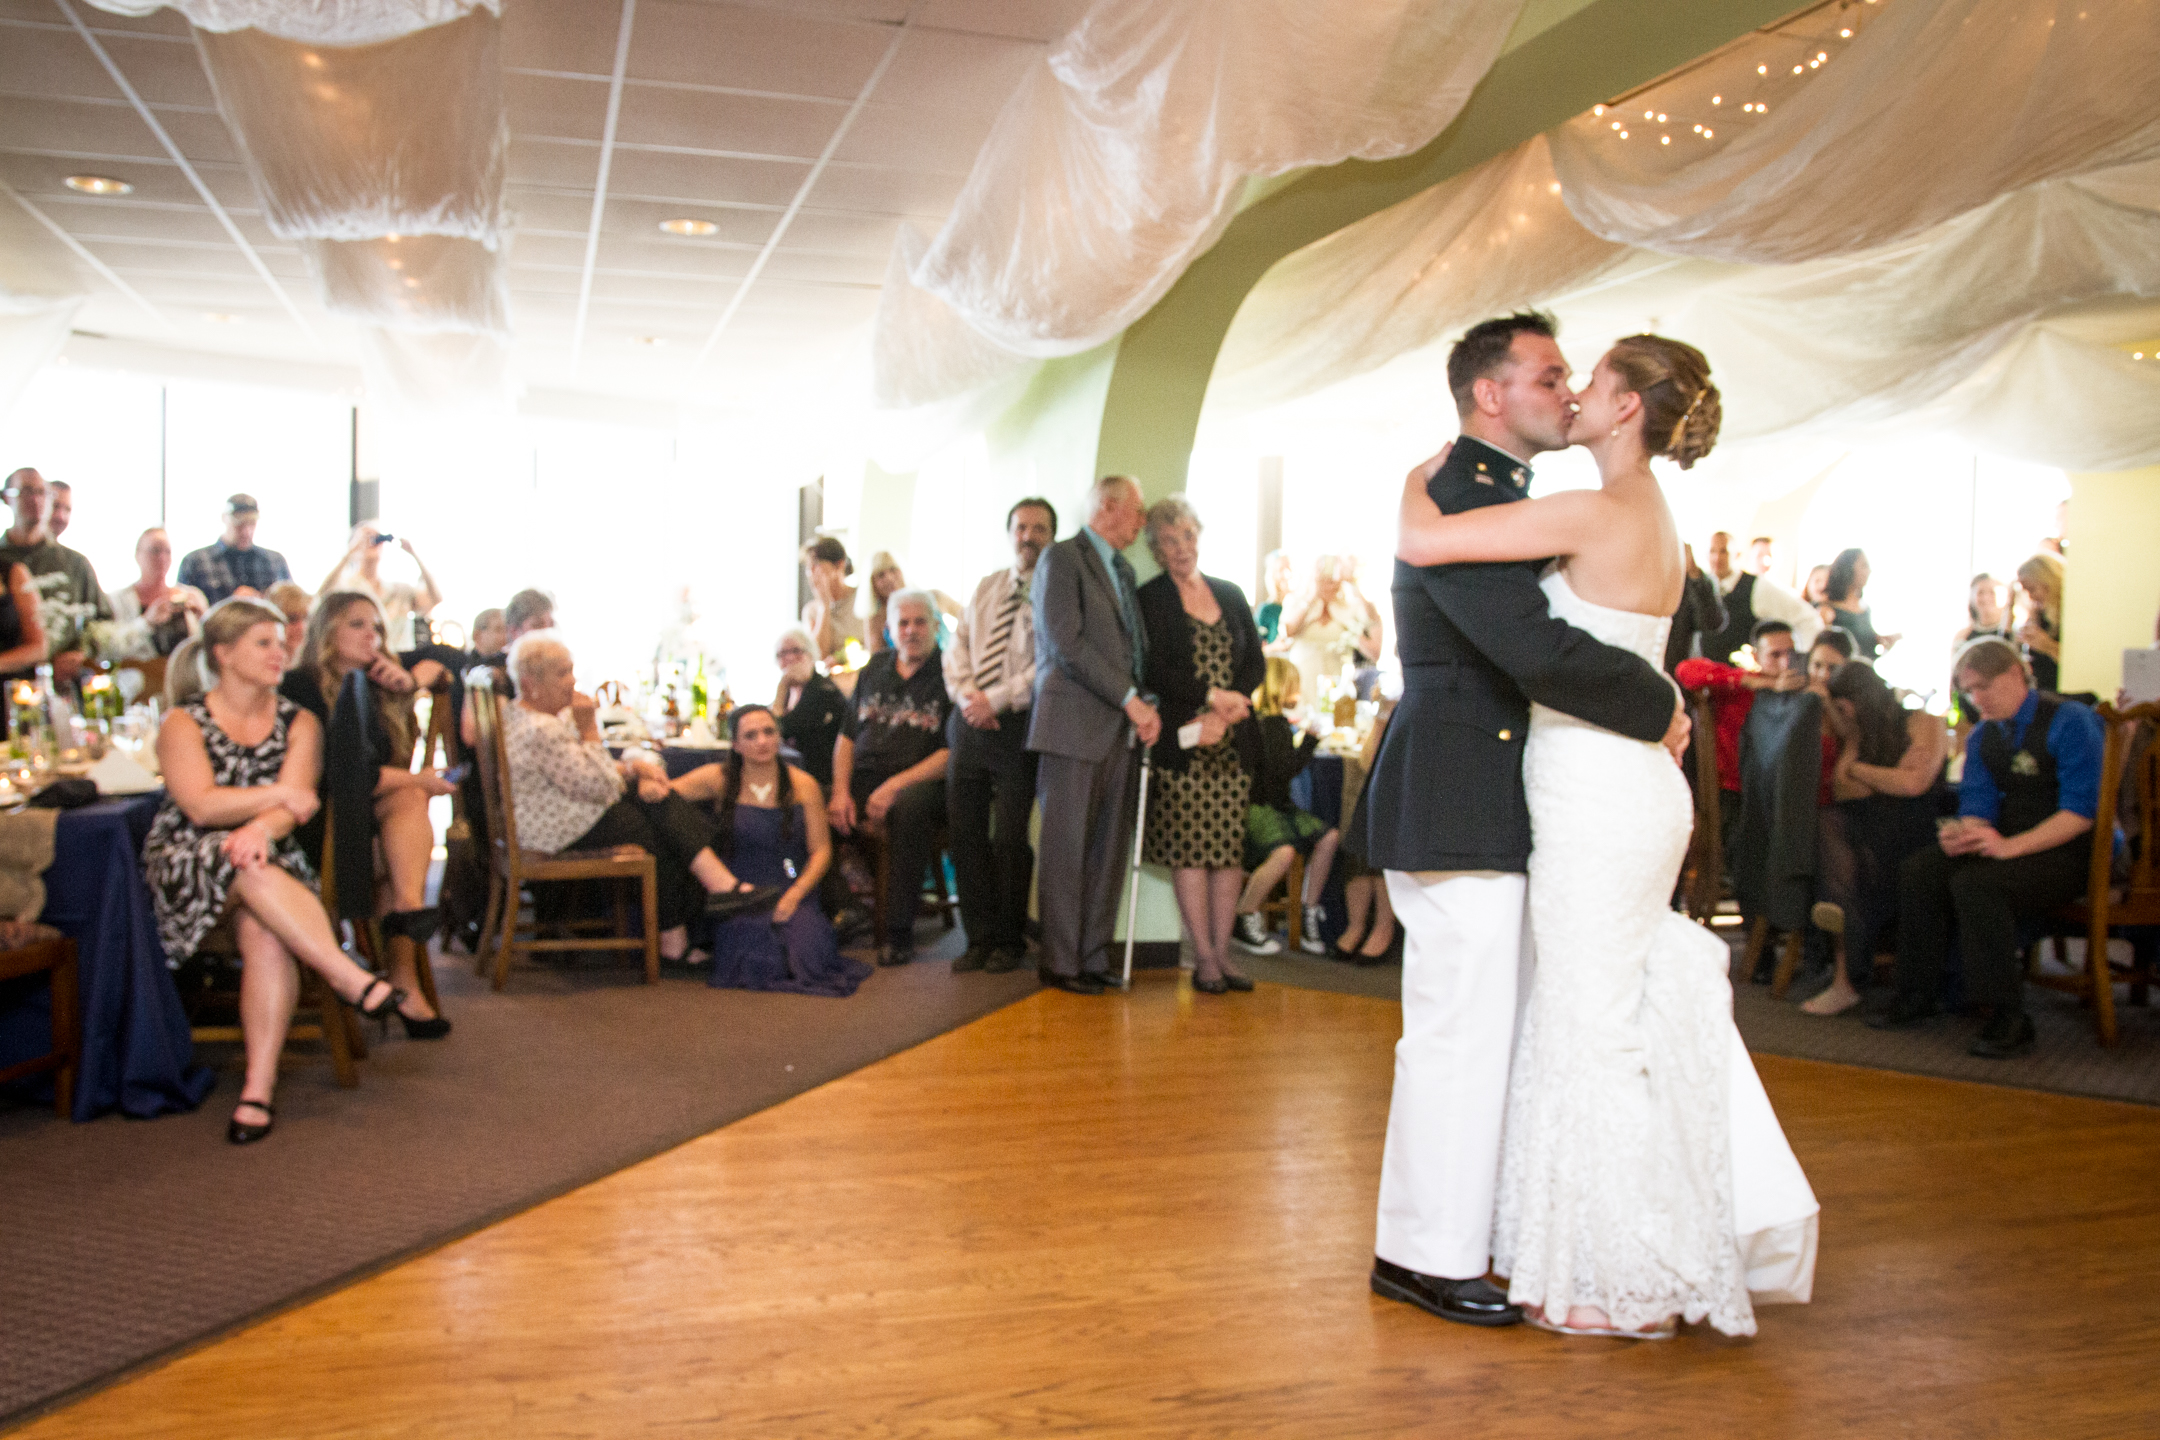 20151114_Stefanski_Wedding_MGM_0016.jpg